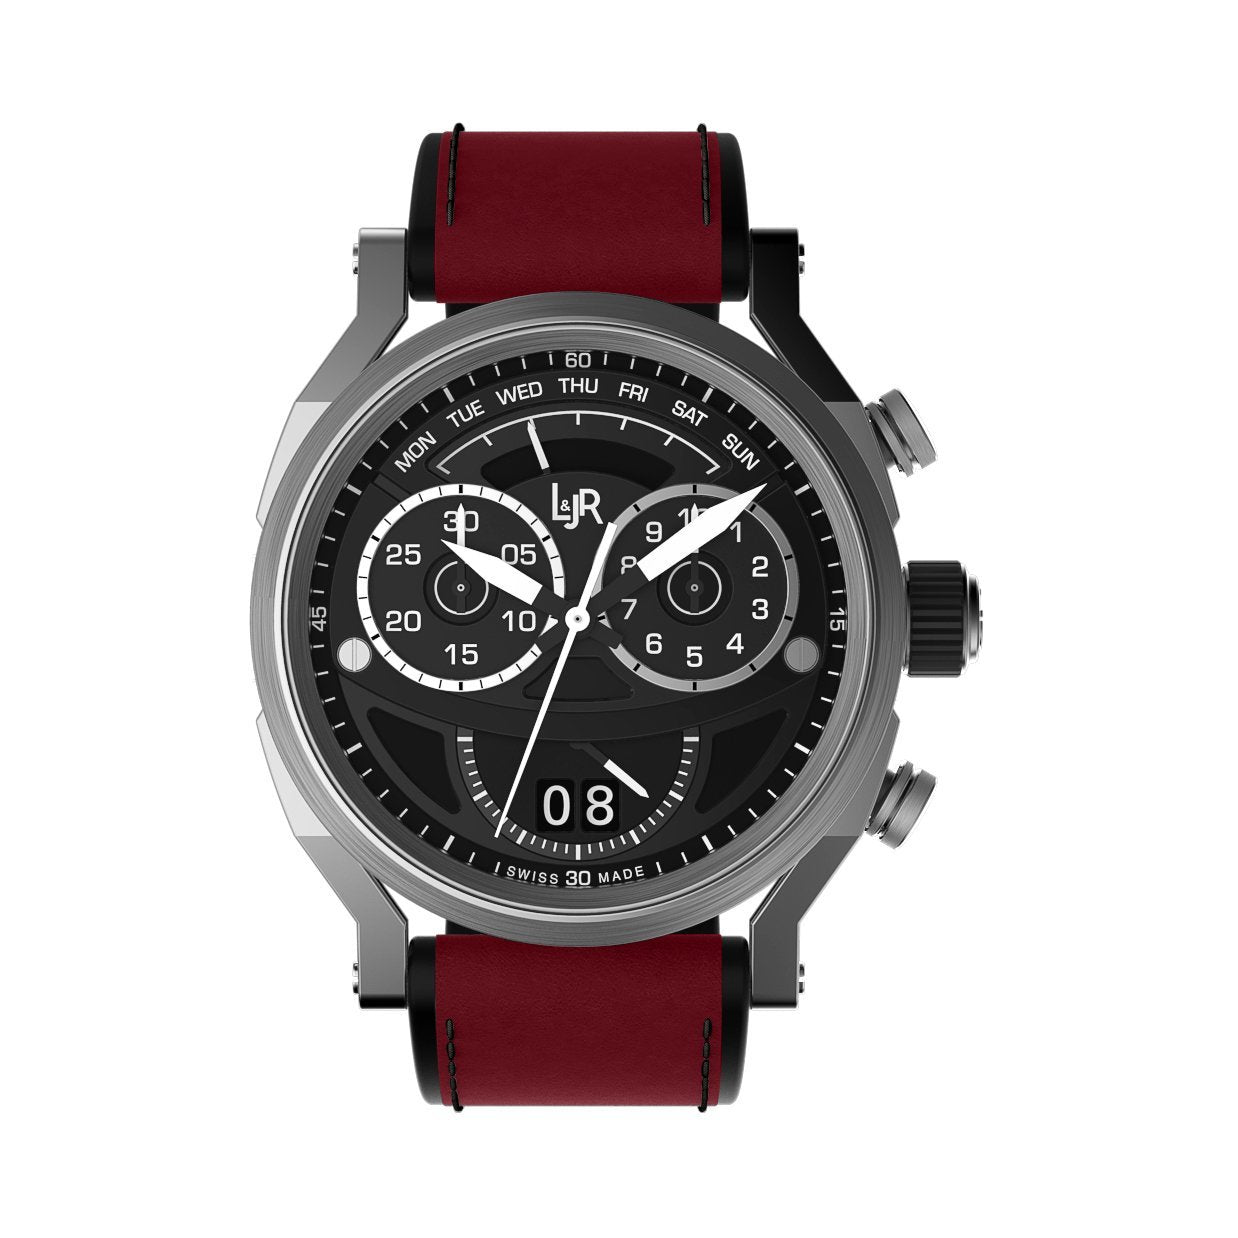 L&Jr Chronograph Day and Date Black Burgundy